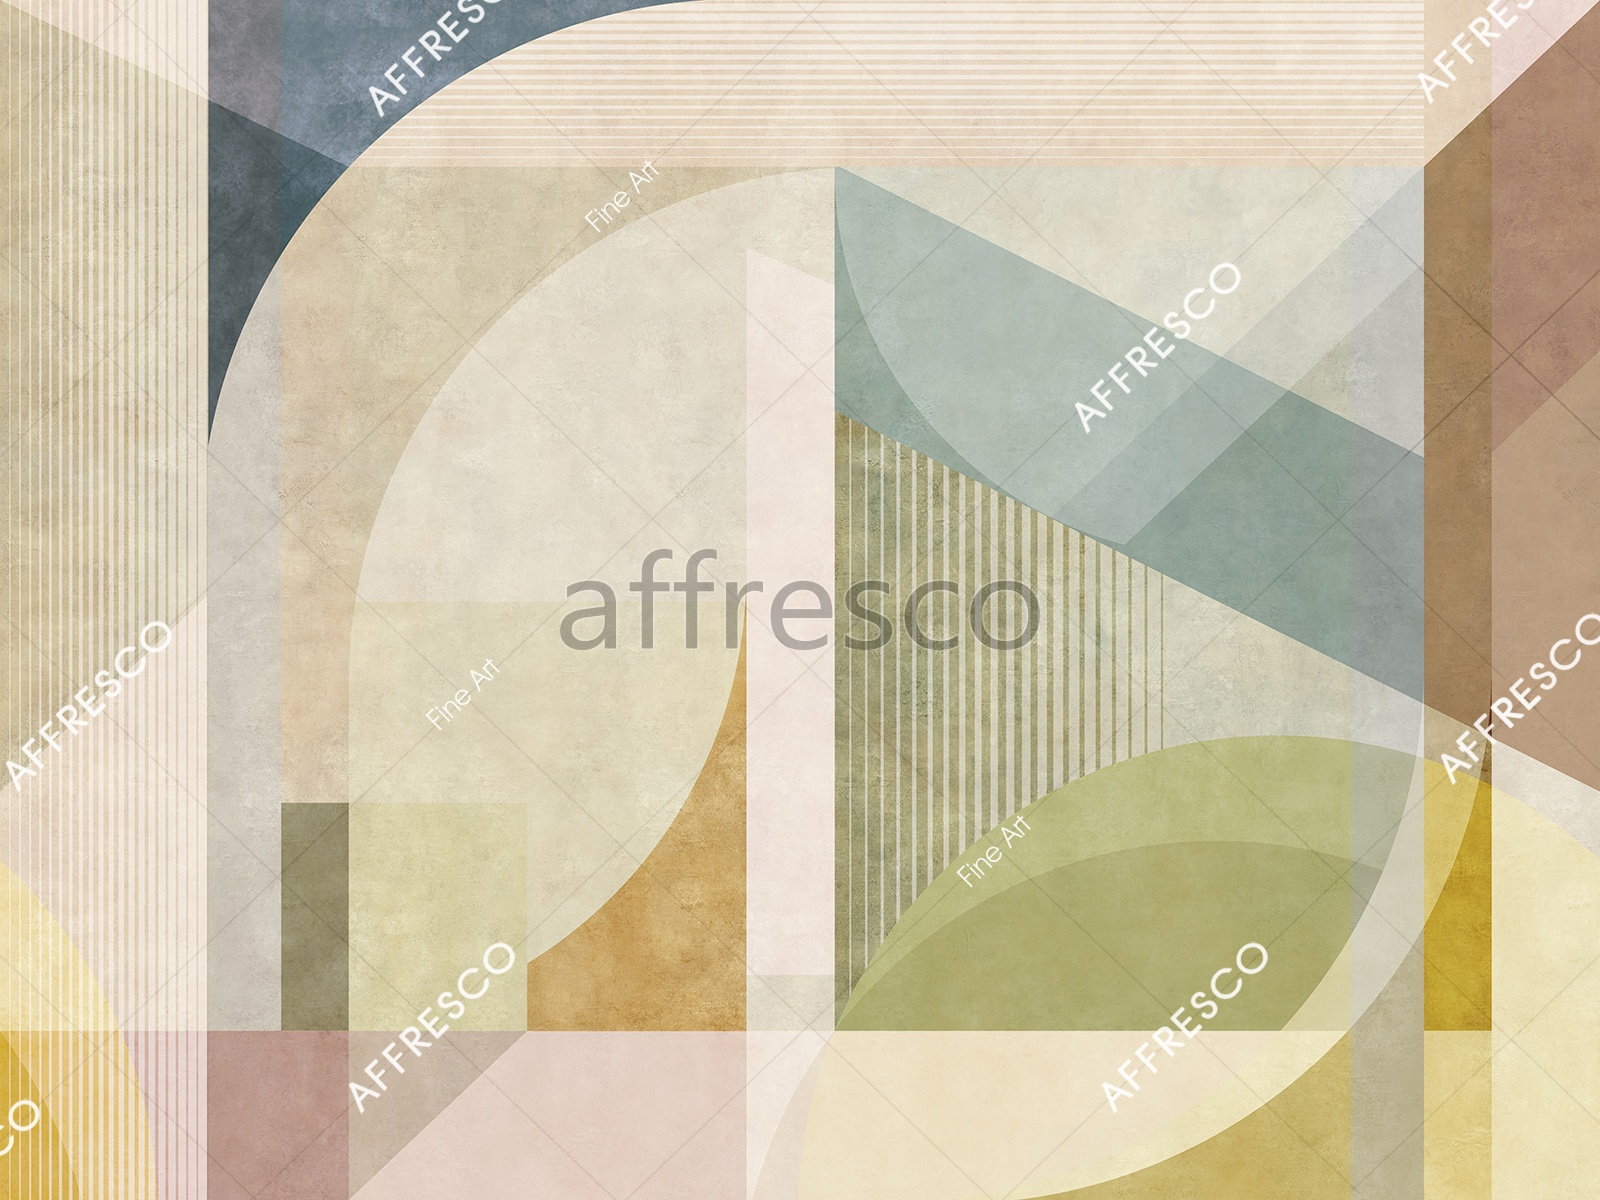 RE882-COL1 | Fine Art | Affresco Factory